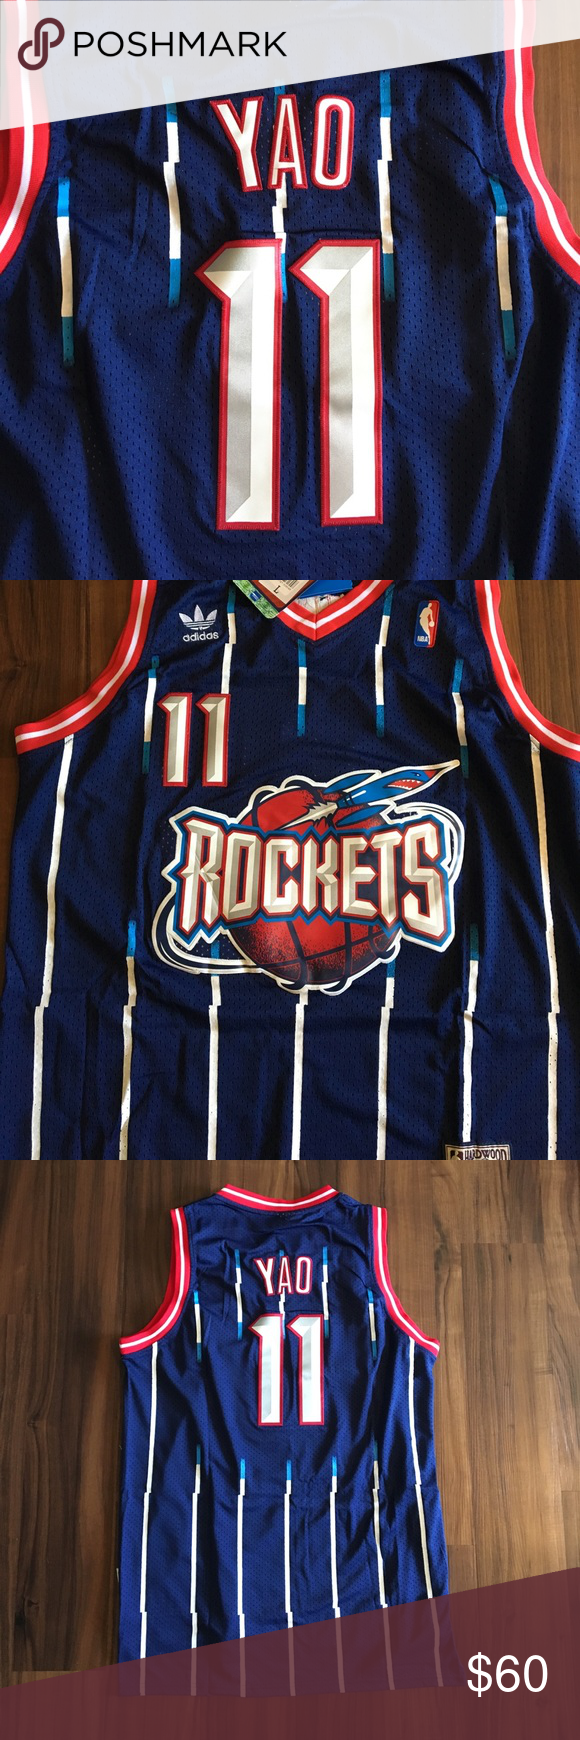 best service 48e9b 468b7 Throwback Yao Ming Rockets Jersey Brand new throwback #11 ...